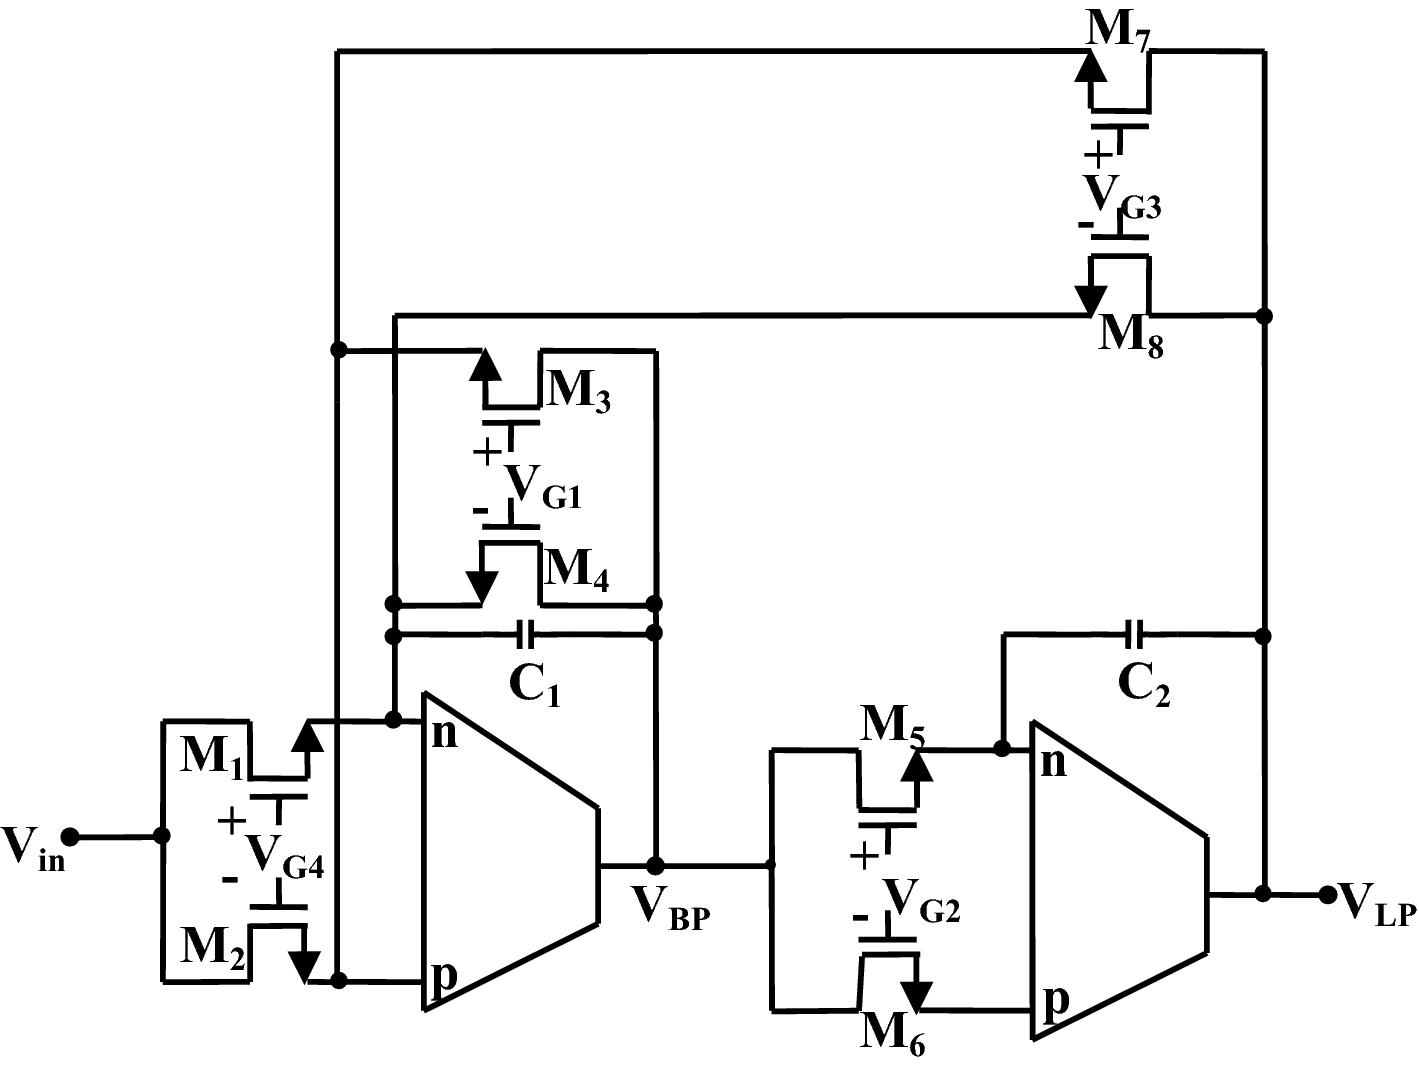 Otra Its Implementations And Applications A State Of The Art Circuit Diagram Oscillatorcircuit Signalprocessing Open Image In New Window